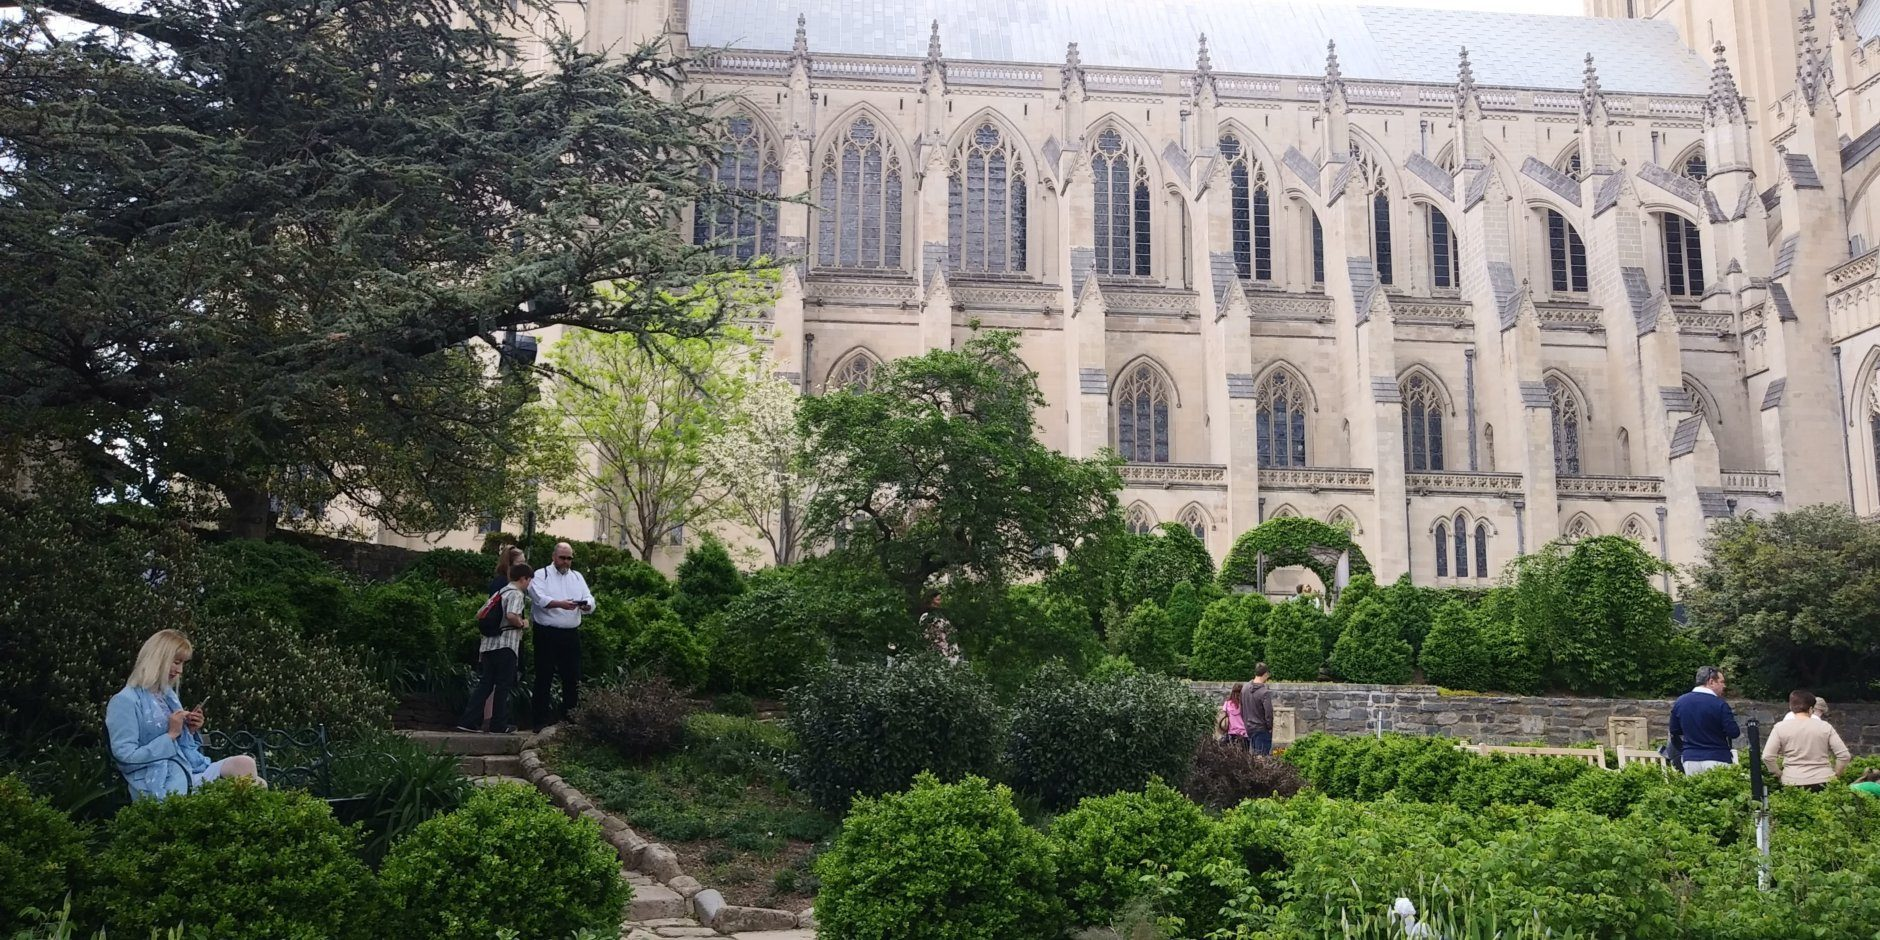 The Bishop's Garden at the Washington National Cathedral shows its spring blooms. (WTOP/Abigail Constantino)